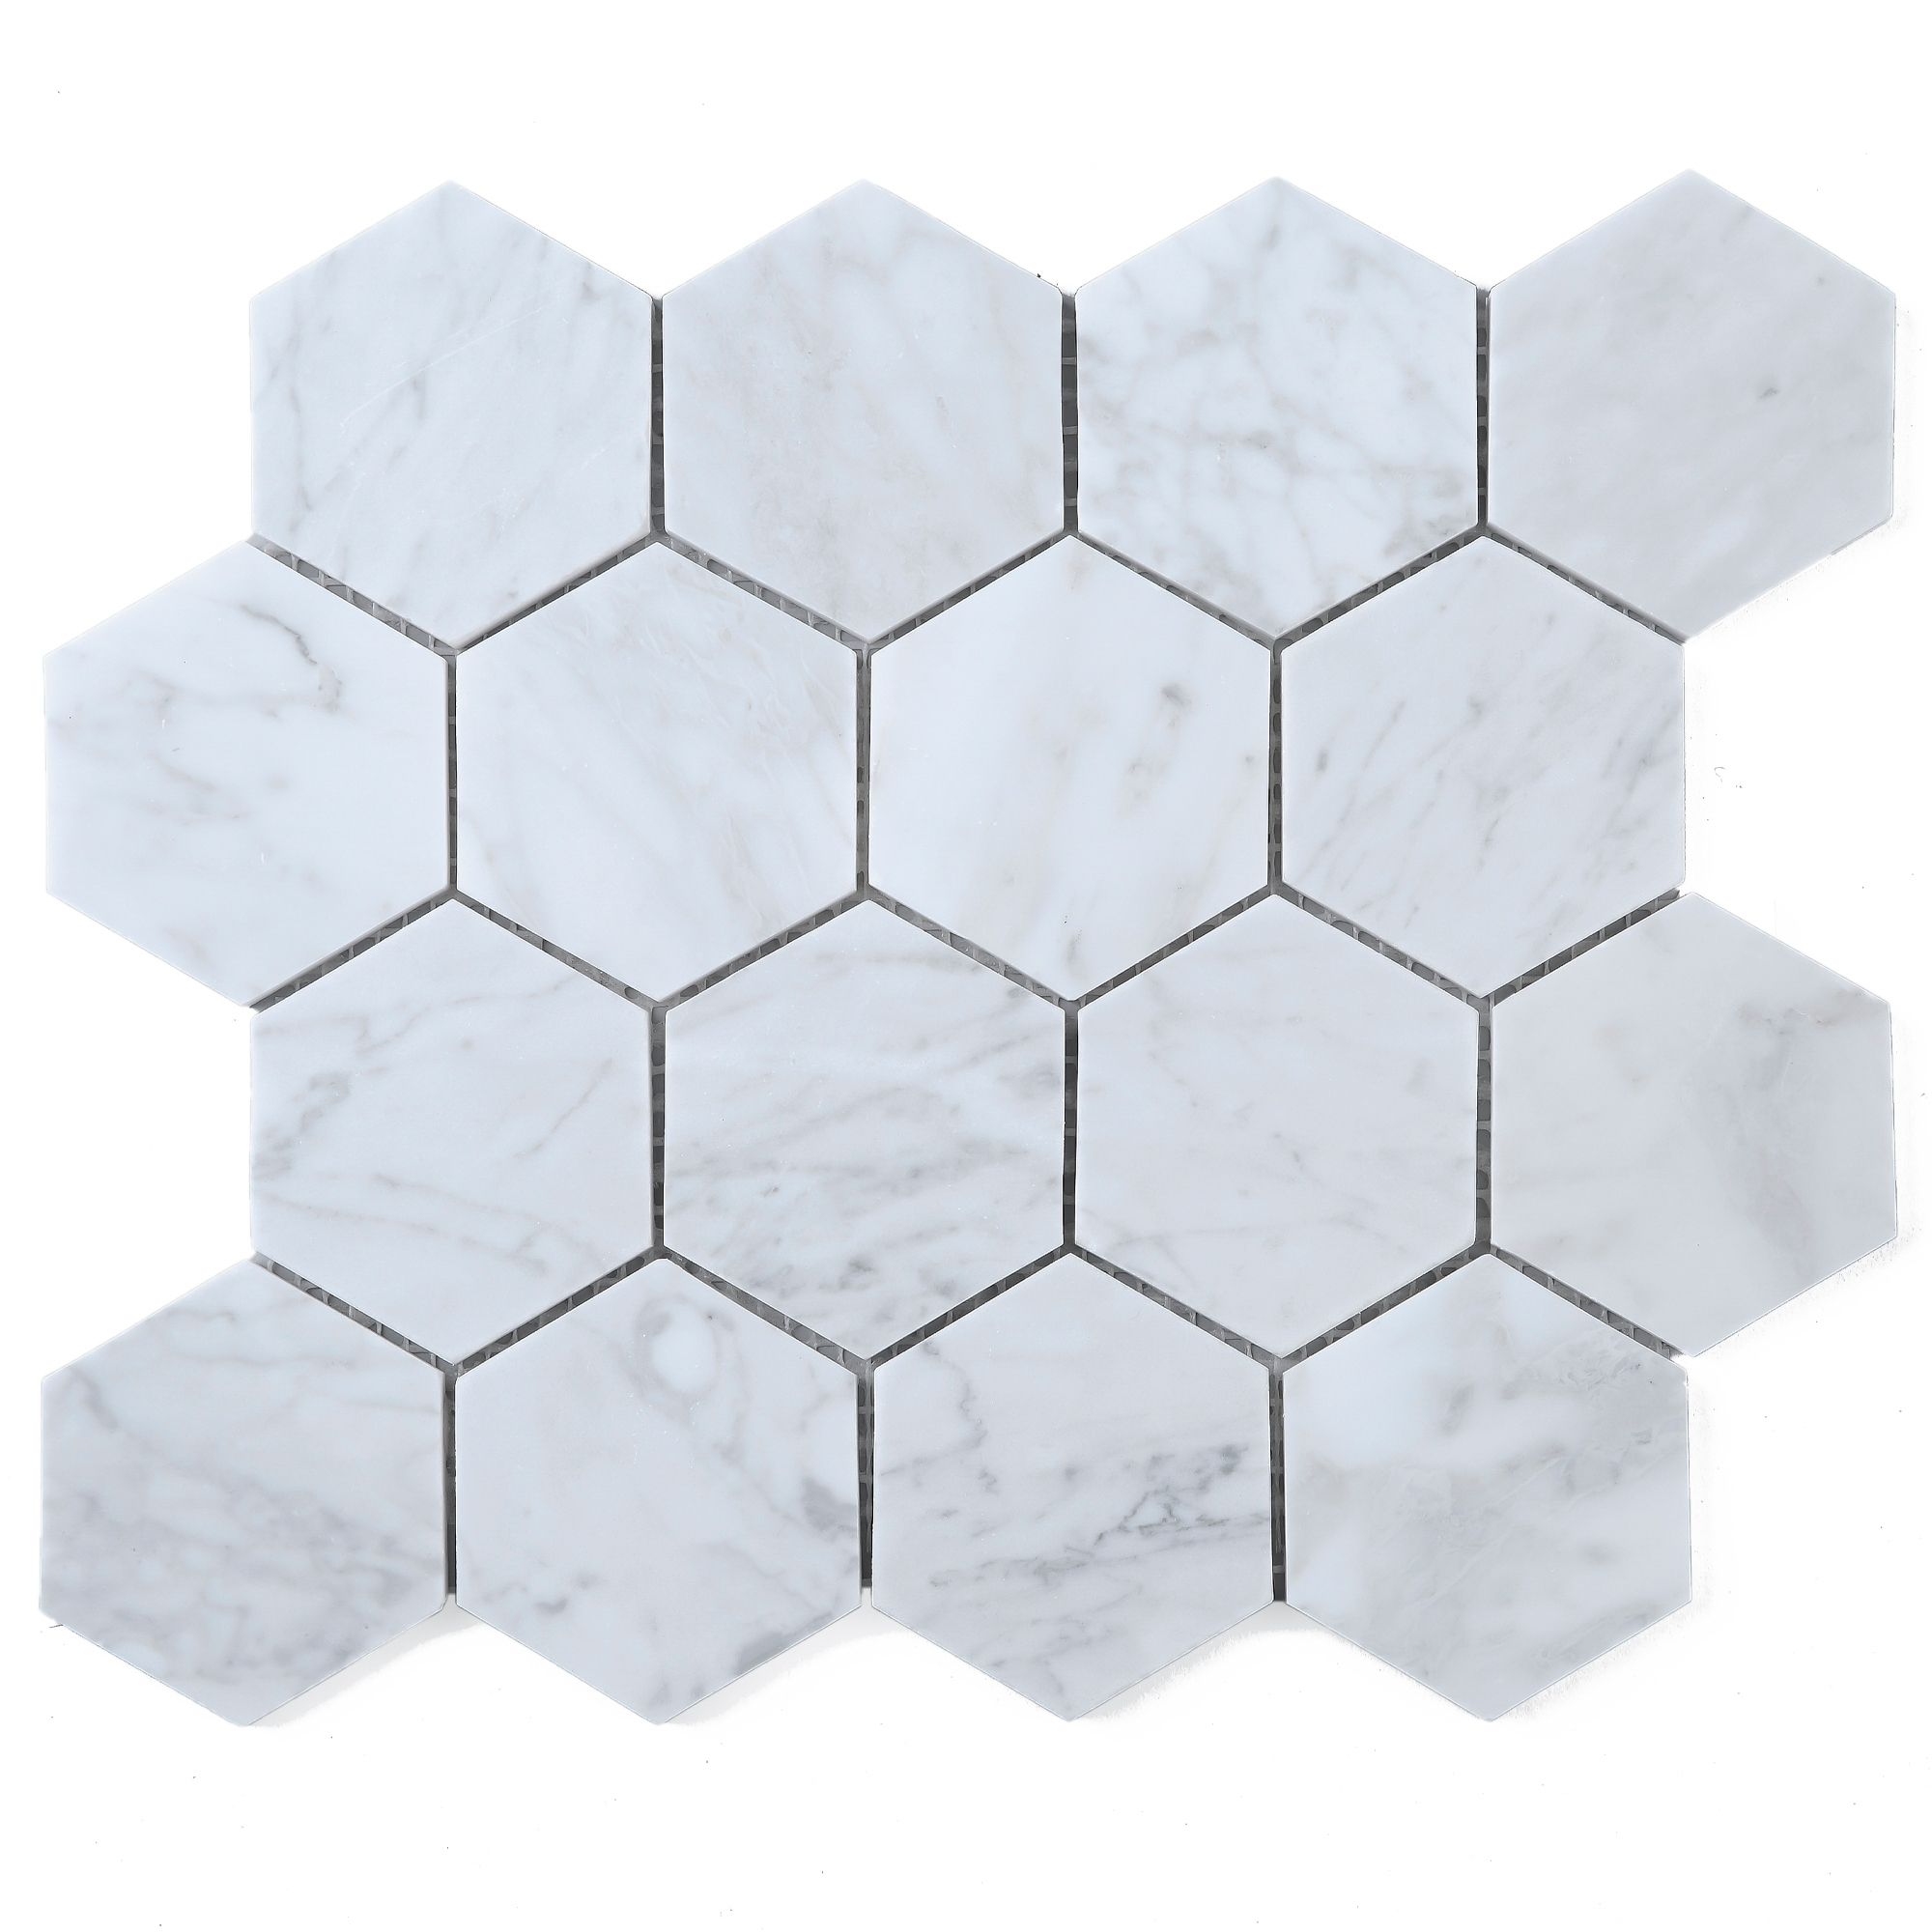 Tilegen 3 Hexagon White Carrara Marble Mosaic Tile In White Floor And Wall Tile 10 Sheets 8 6sqft Overstock 27973456